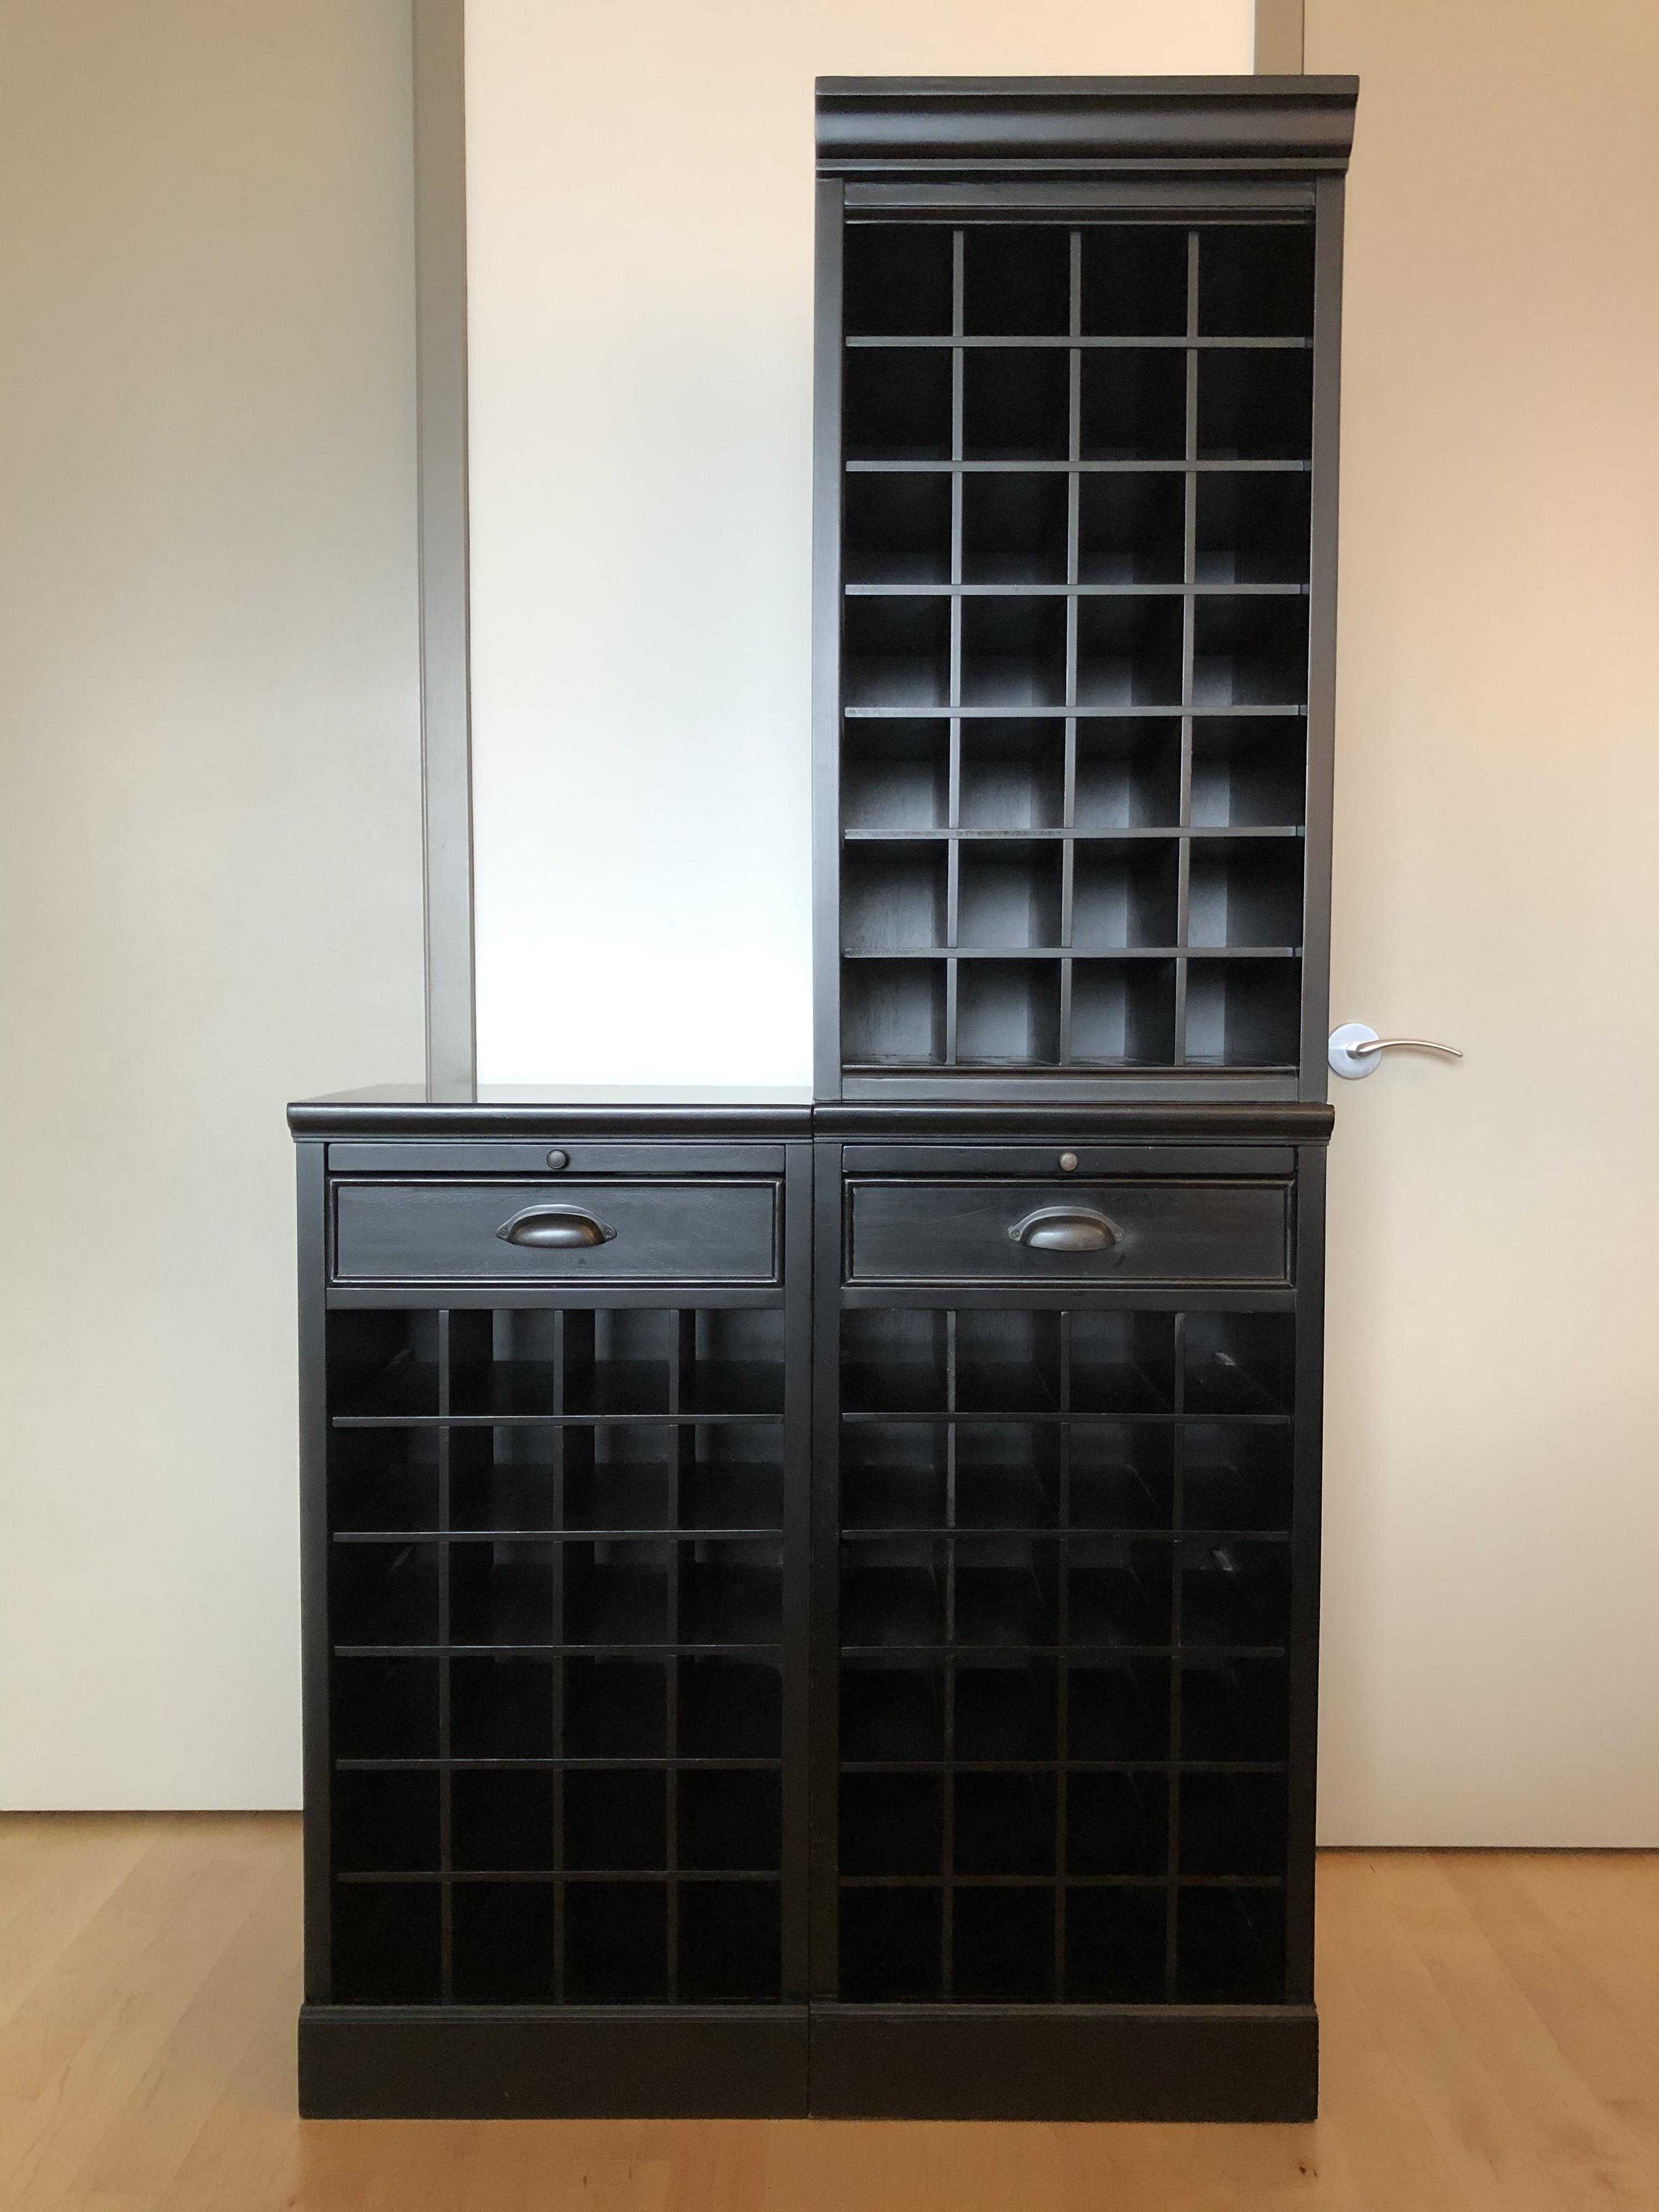 Pottery Barn Black Wine Grid Bases & Hutch